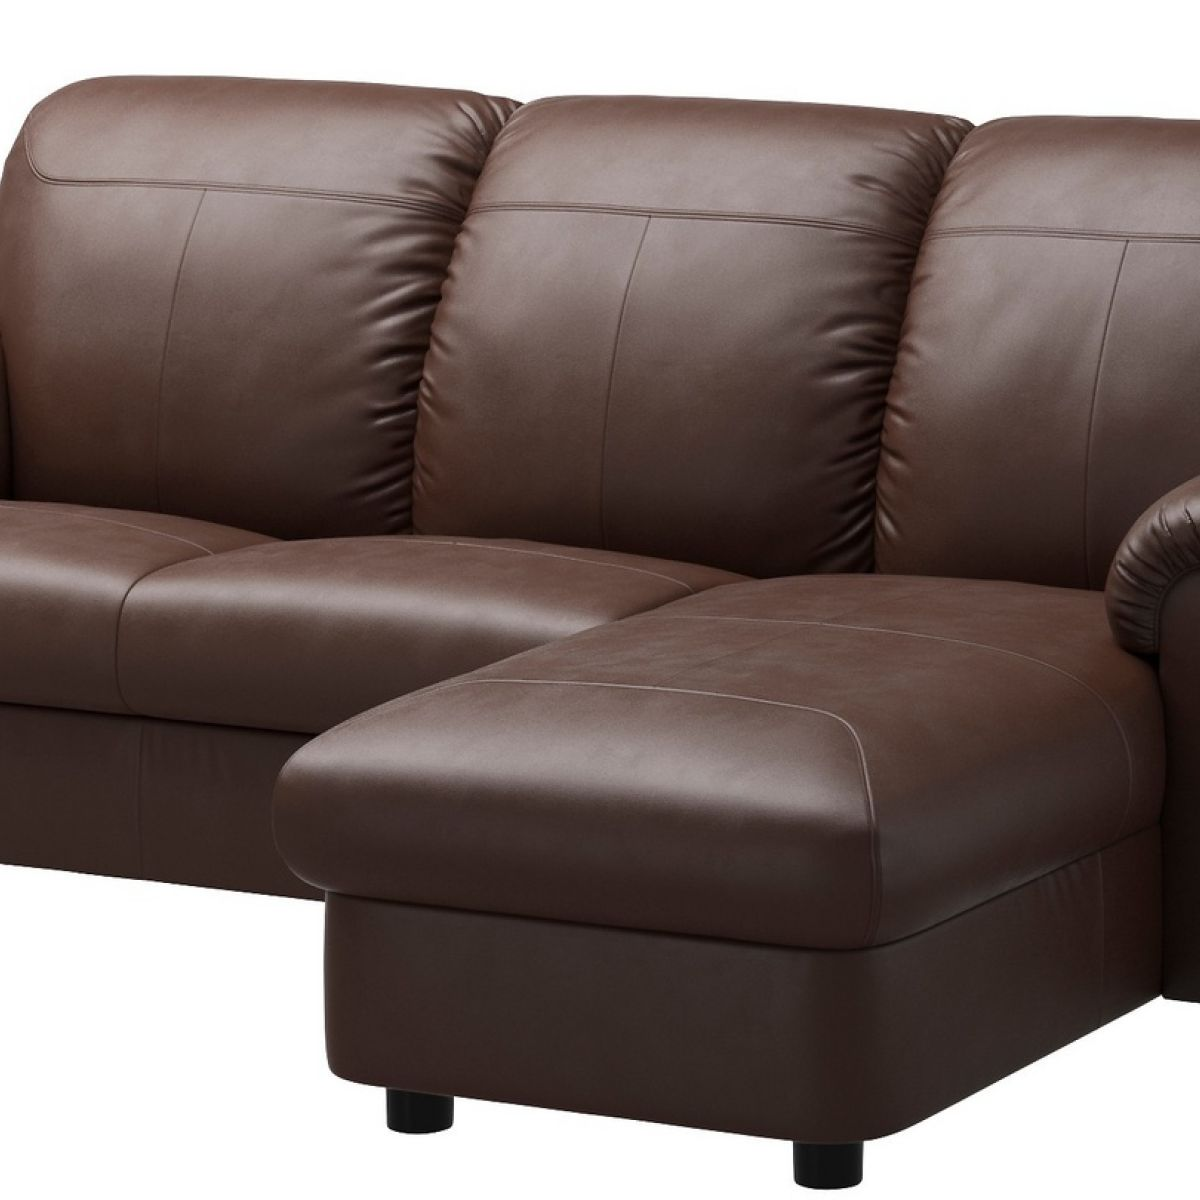 dark brown fake leather couch